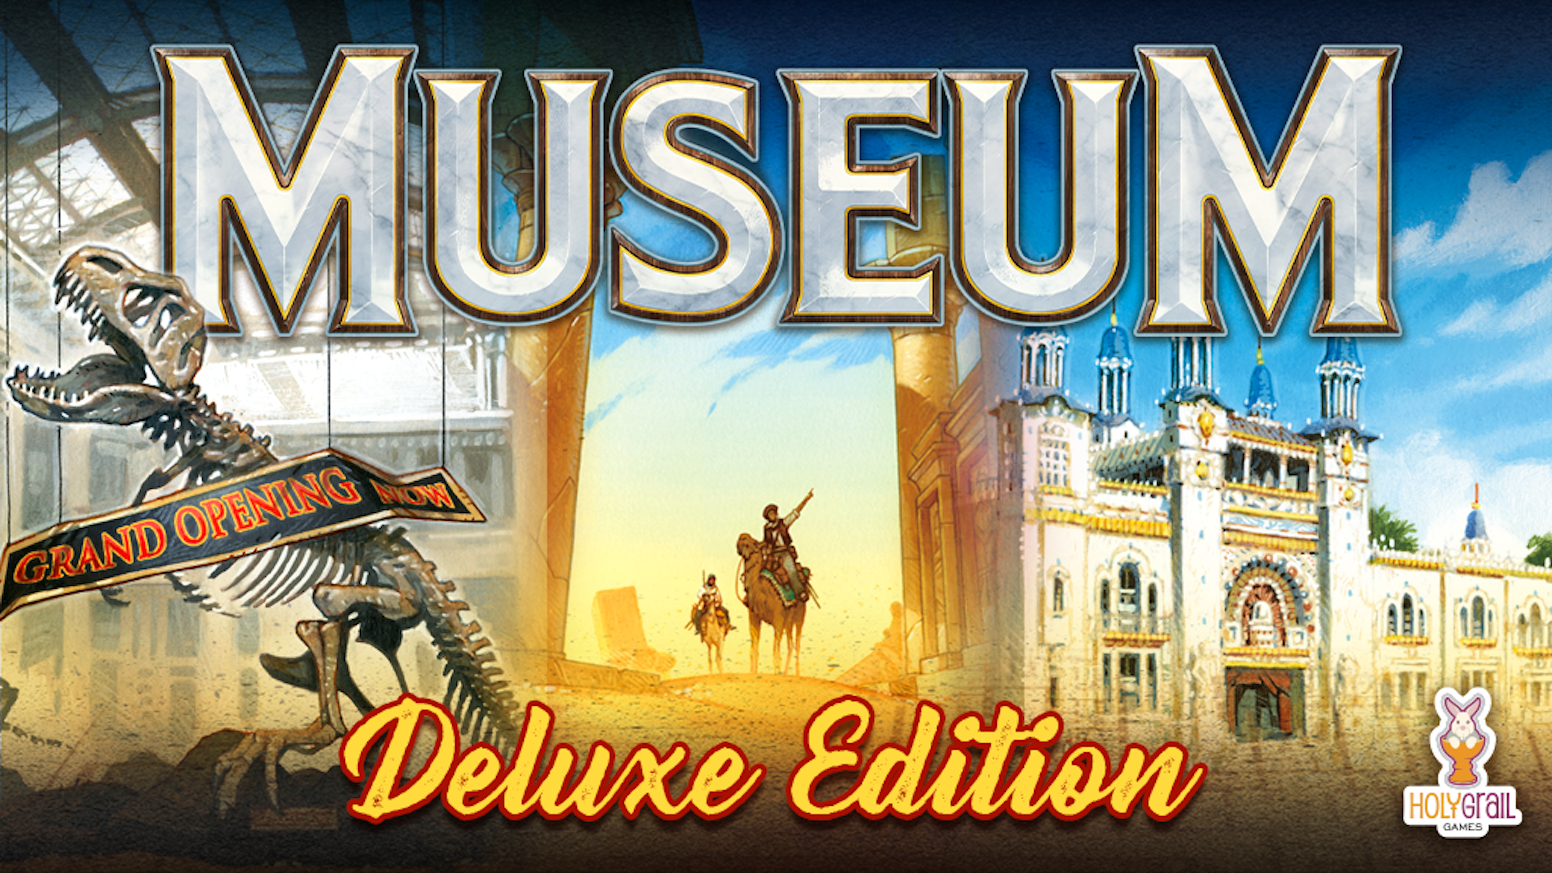 Museum, the beautiful set collection game, is back on Kickstarter with a Deluxe box, new expansion, update pack and more!